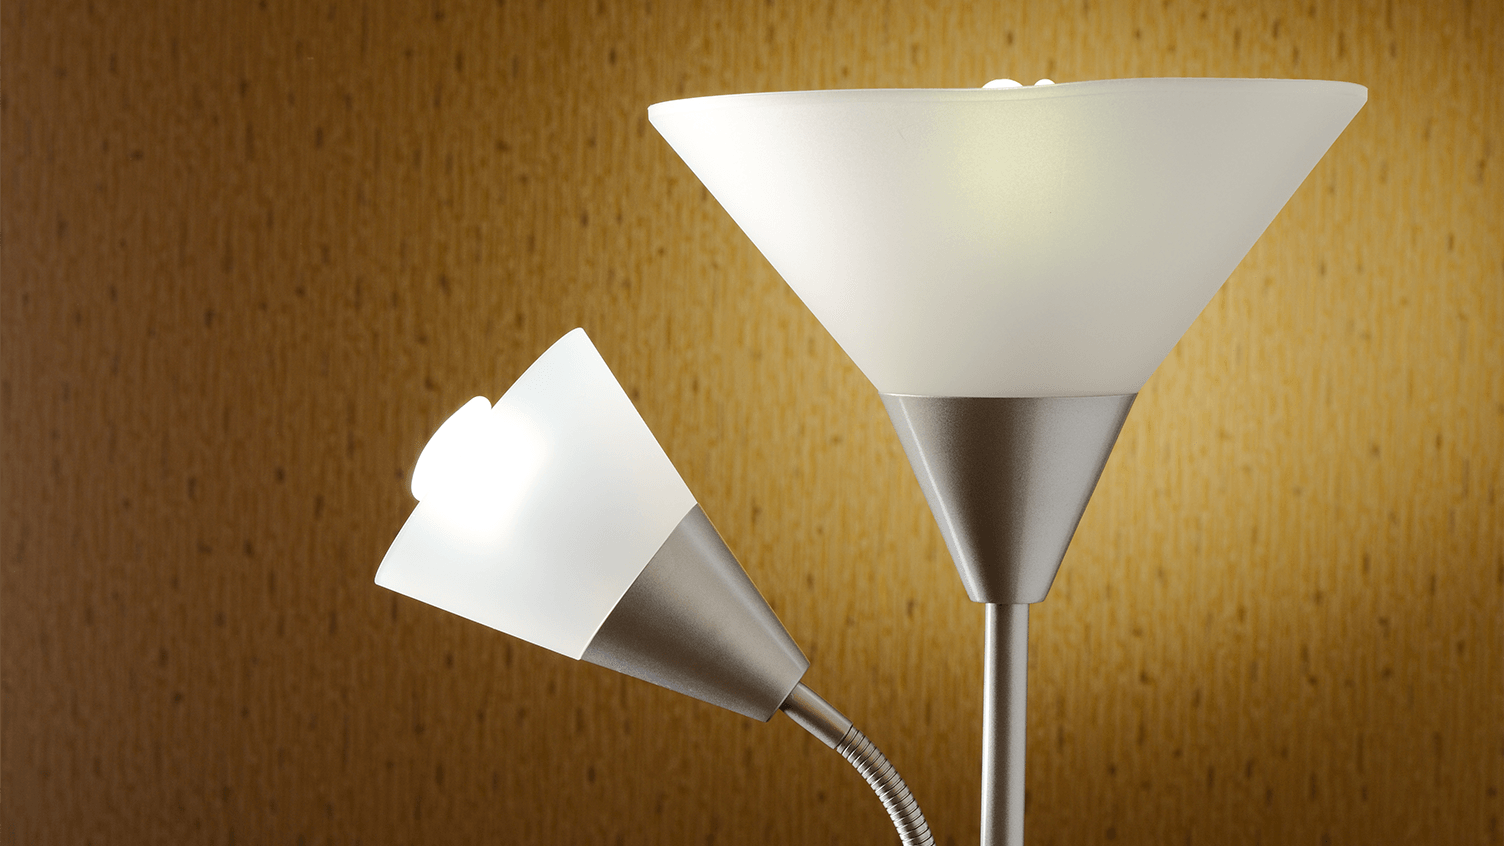 How-To: Repairing Incandescent Table and Floor Lamps